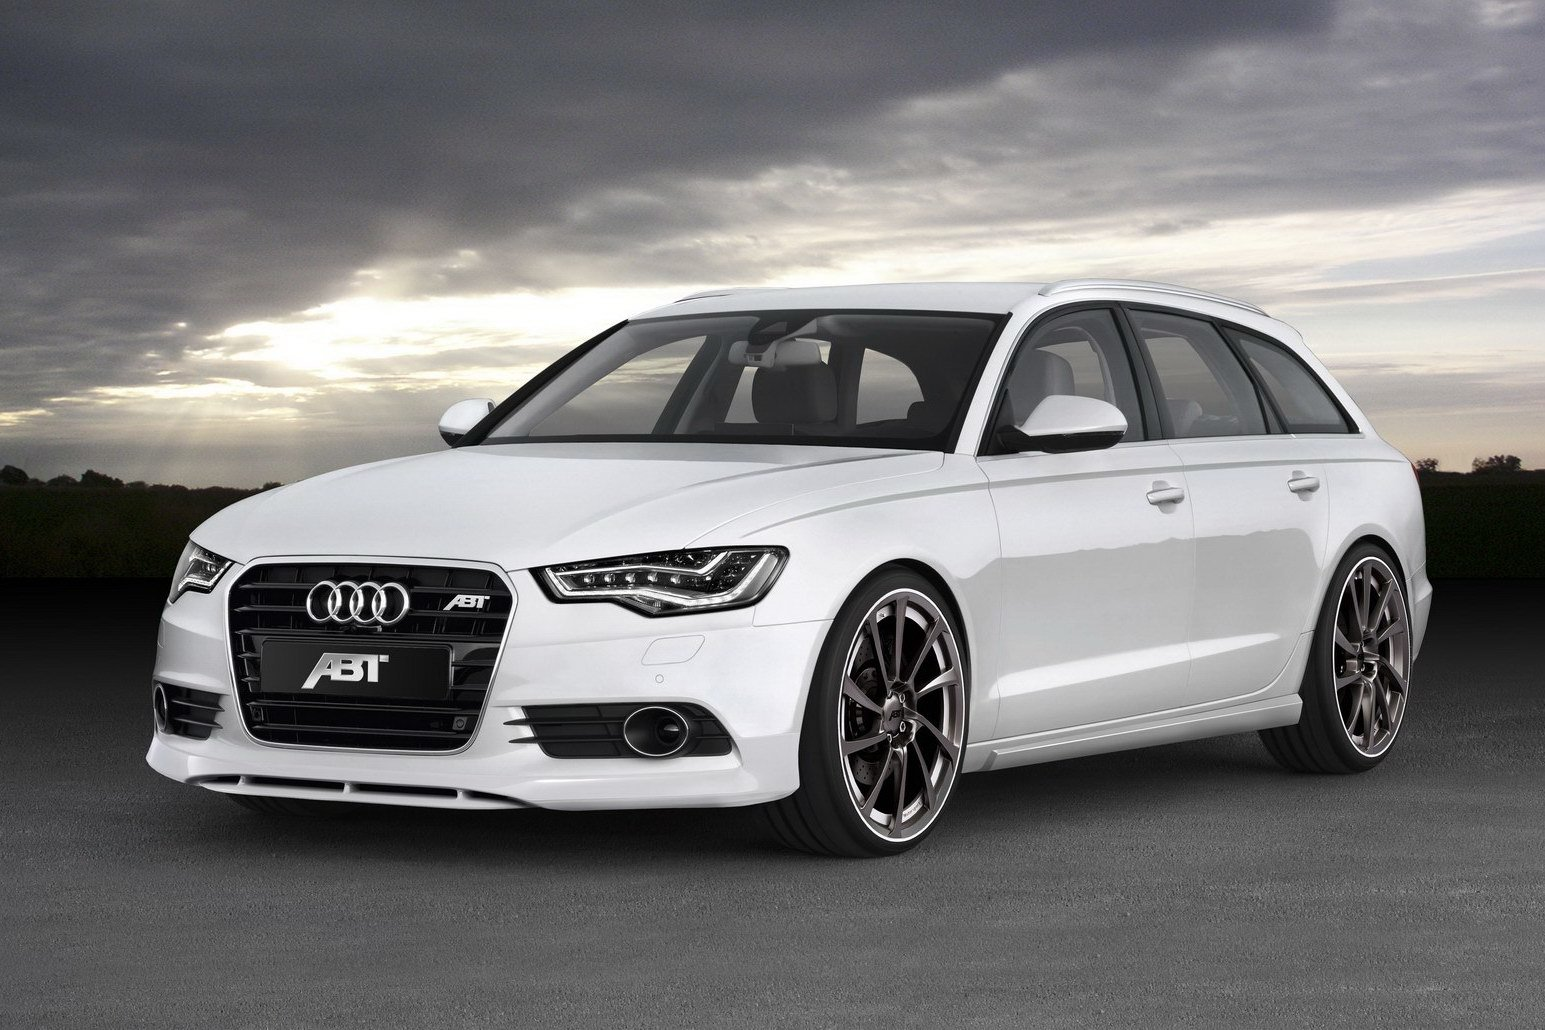 Latest 2011 Abt Audi A6 Avant Wallpapers Auto Cars Concept Free Download